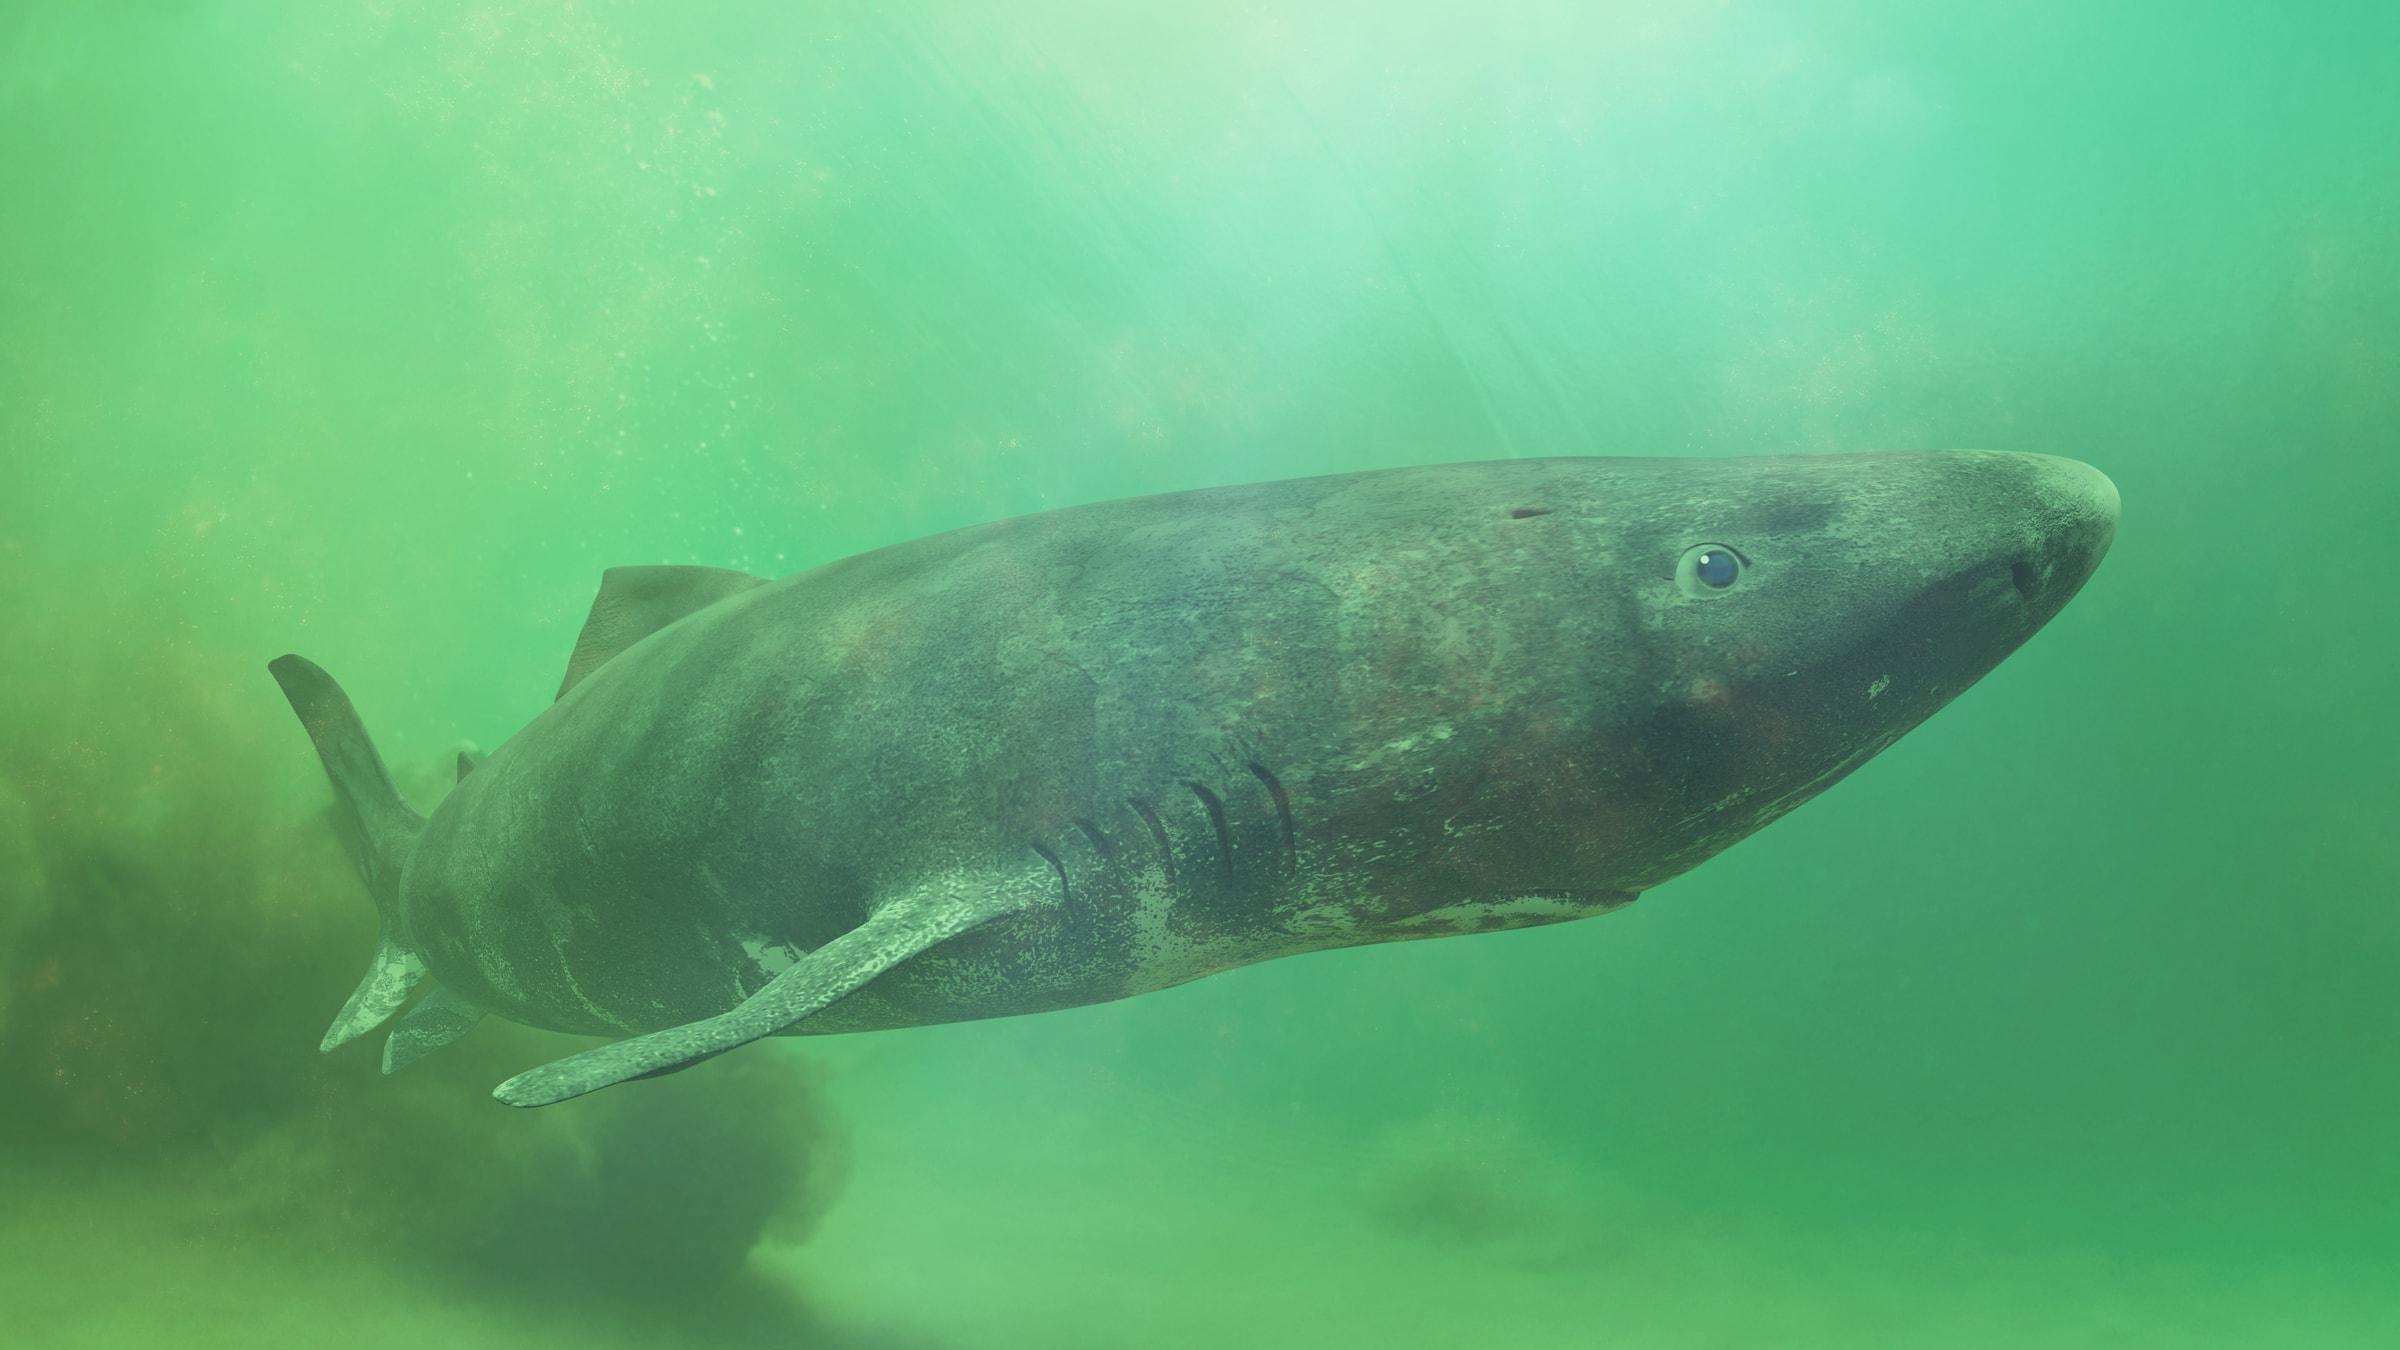 Greenland Shark near the ocean ground, Somniosus microcephalus - shark with the longest known lifespan of all vertebrate species_Photo by Dotted Yeti